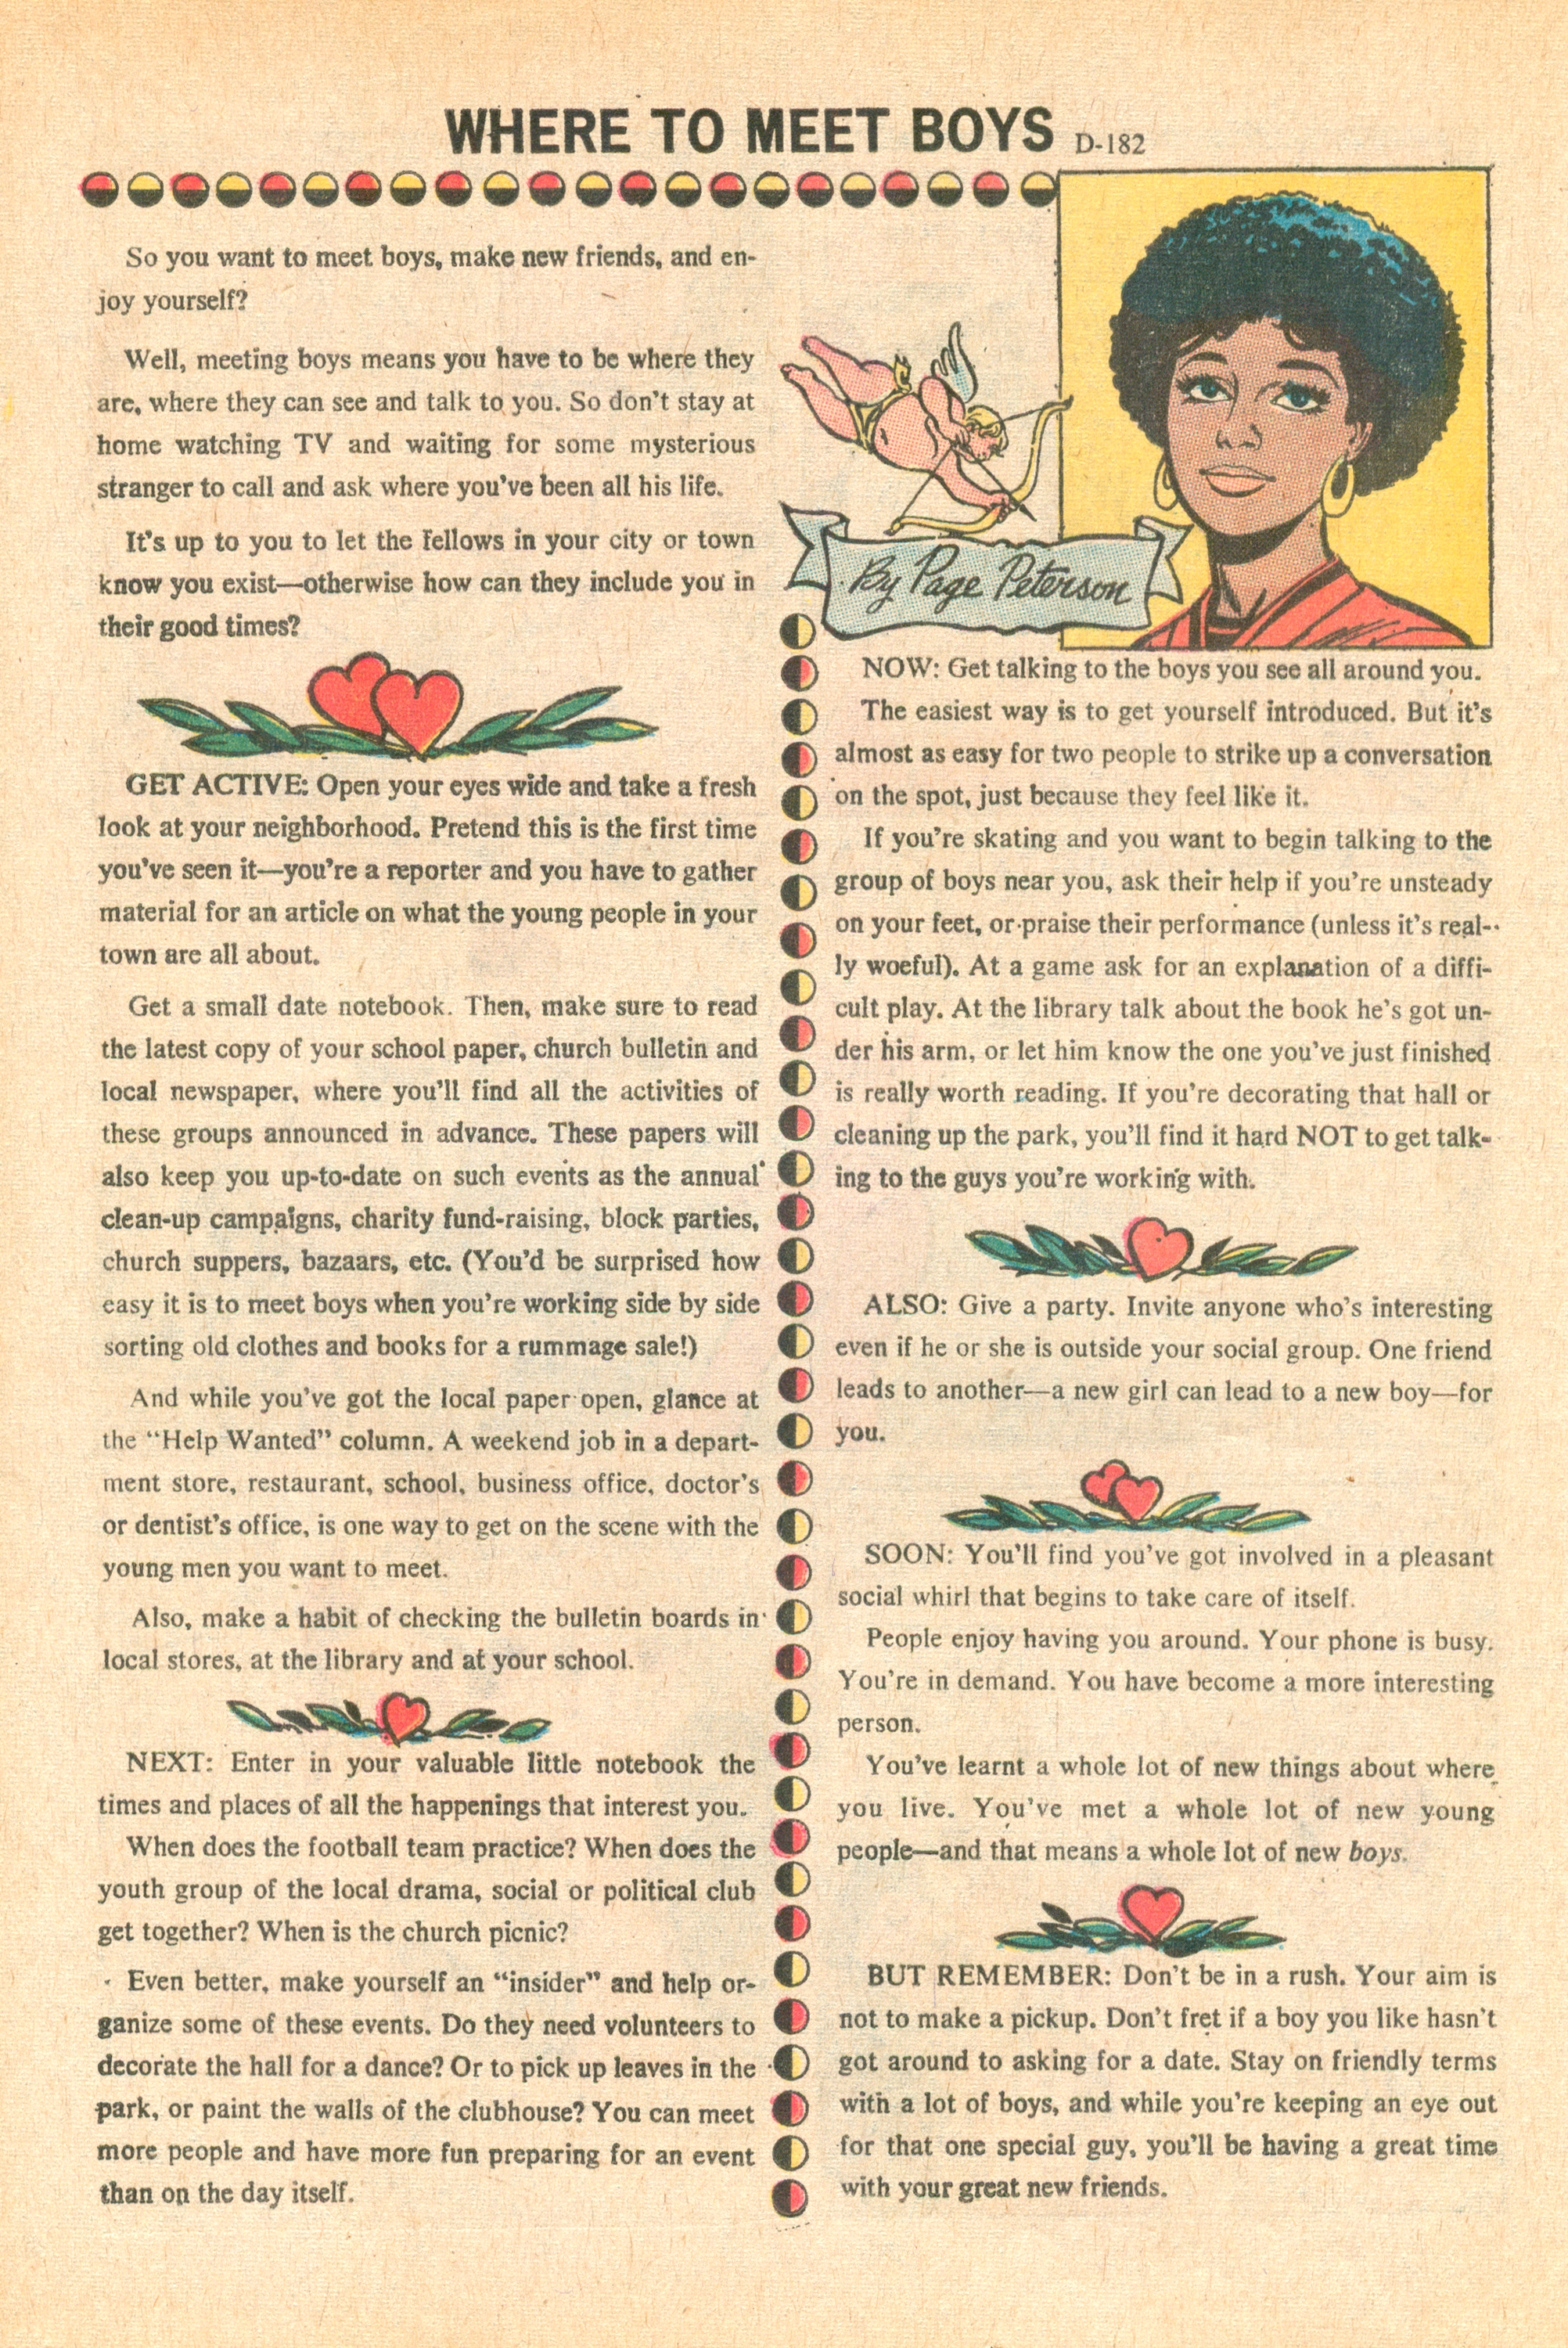 """Where to Meet Boys""  Secret Hearts  #152 (June 1971), Issue Editor: Dorothy Woolfolk, DC Comics."